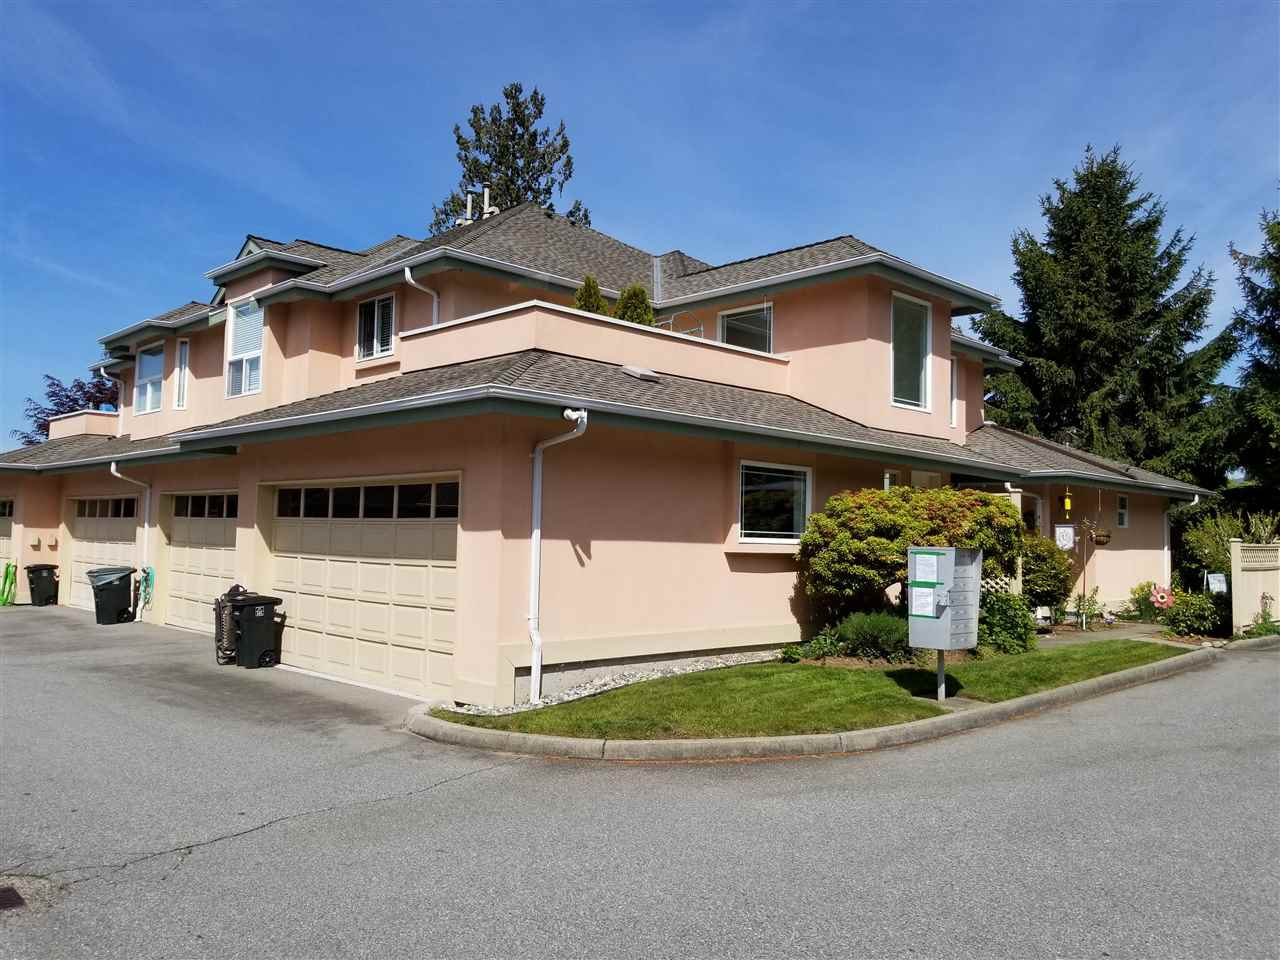 "Main Photo: 12 19044 118B Avenue in Pitt Meadows: Central Meadows Townhouse for sale in ""PIONEER MEADOWS"" : MLS®# R2346893"